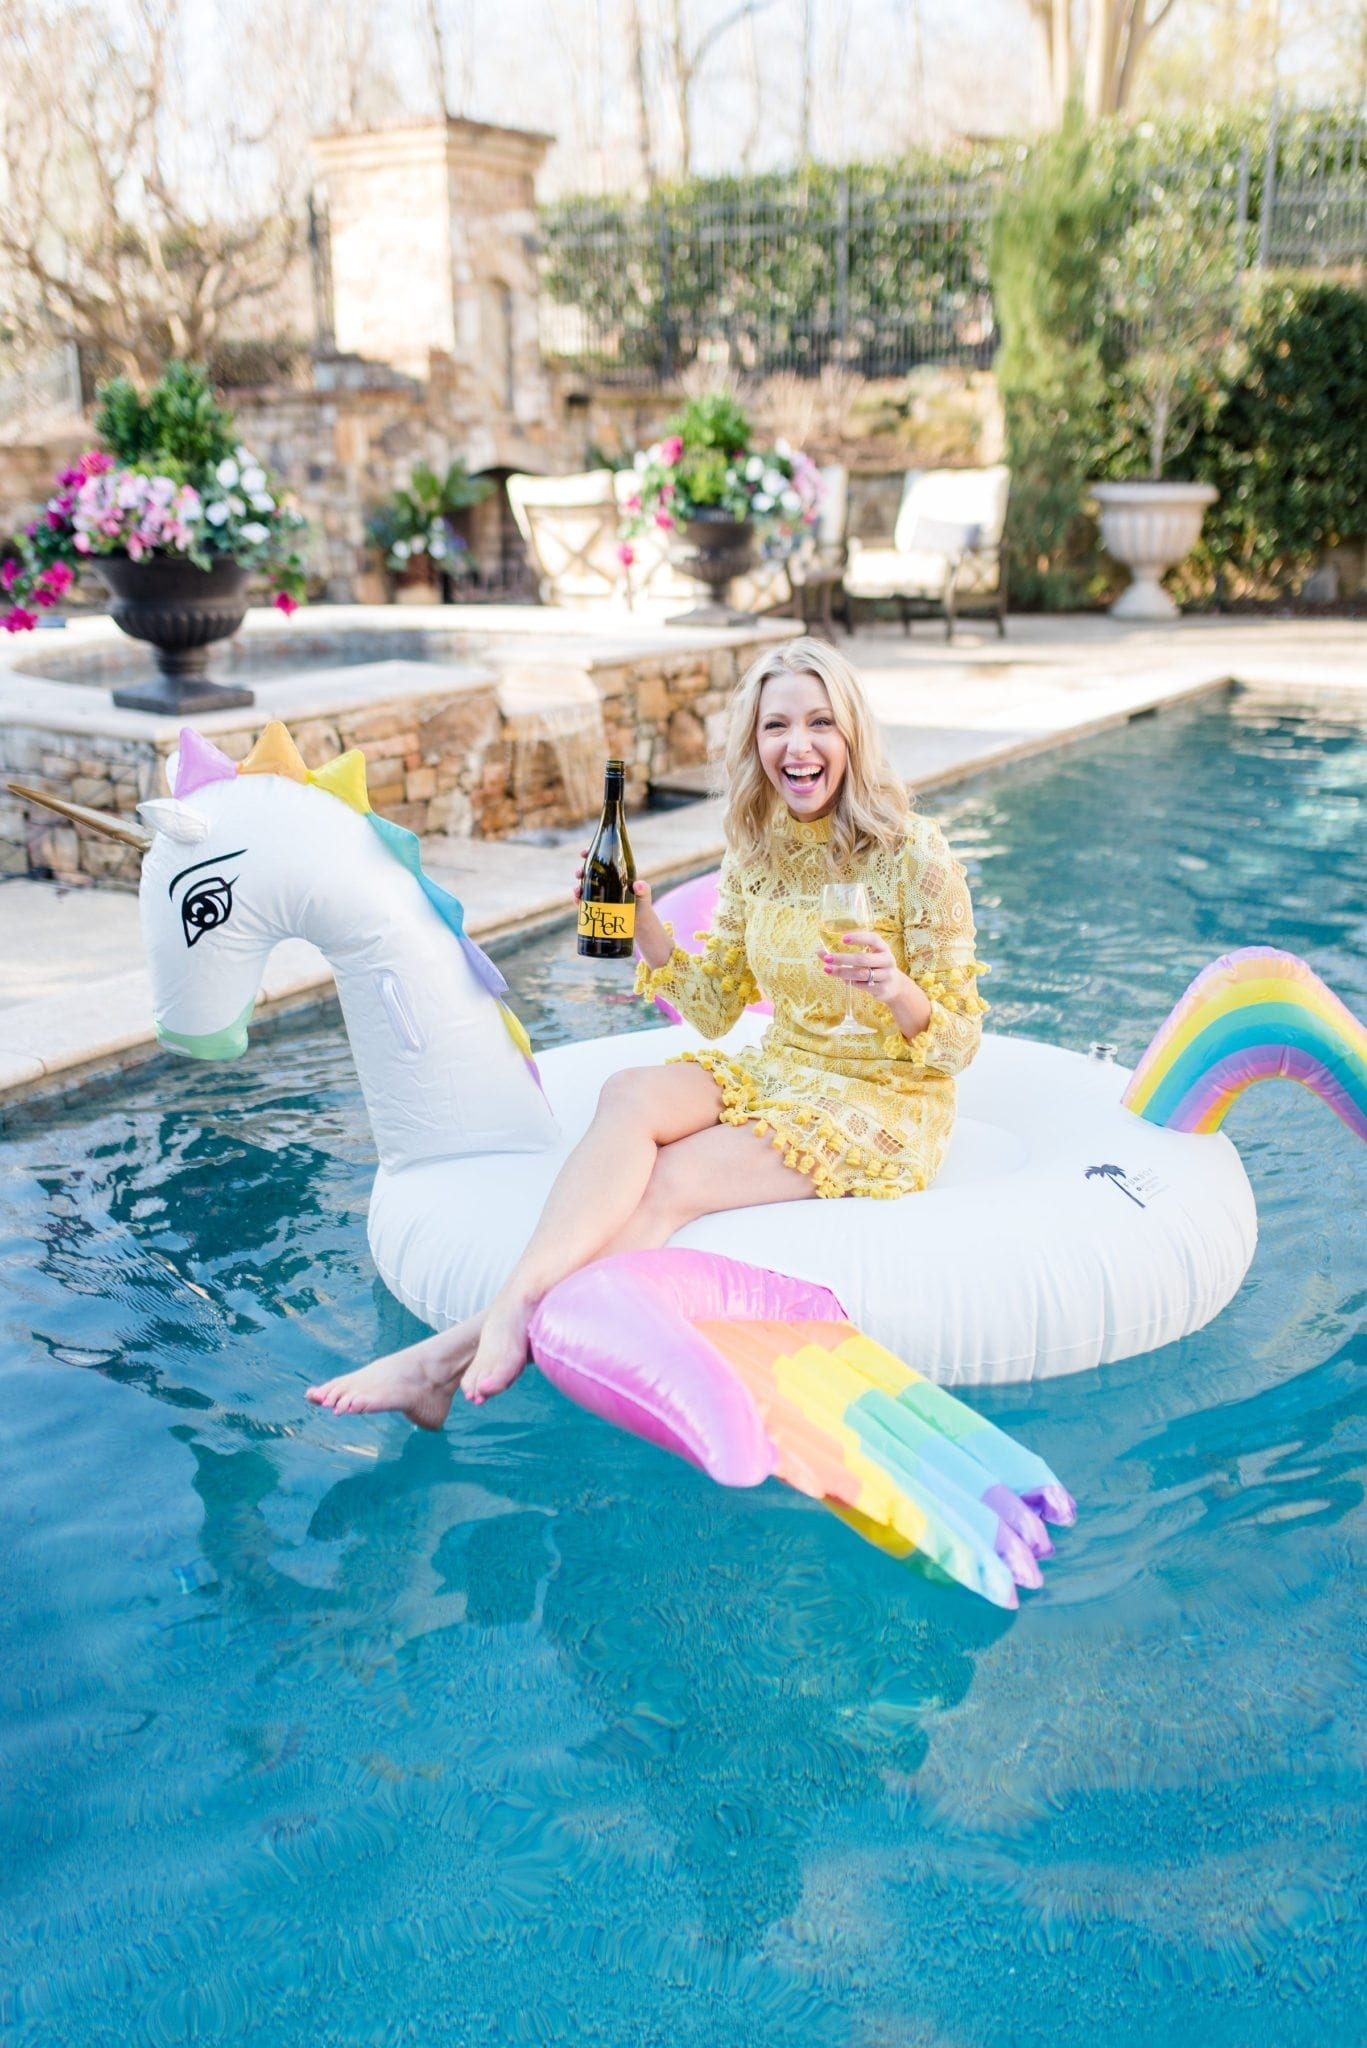 Butter Wine poolside! Throw a fun pool party with these top tips on how to have fun with girls!